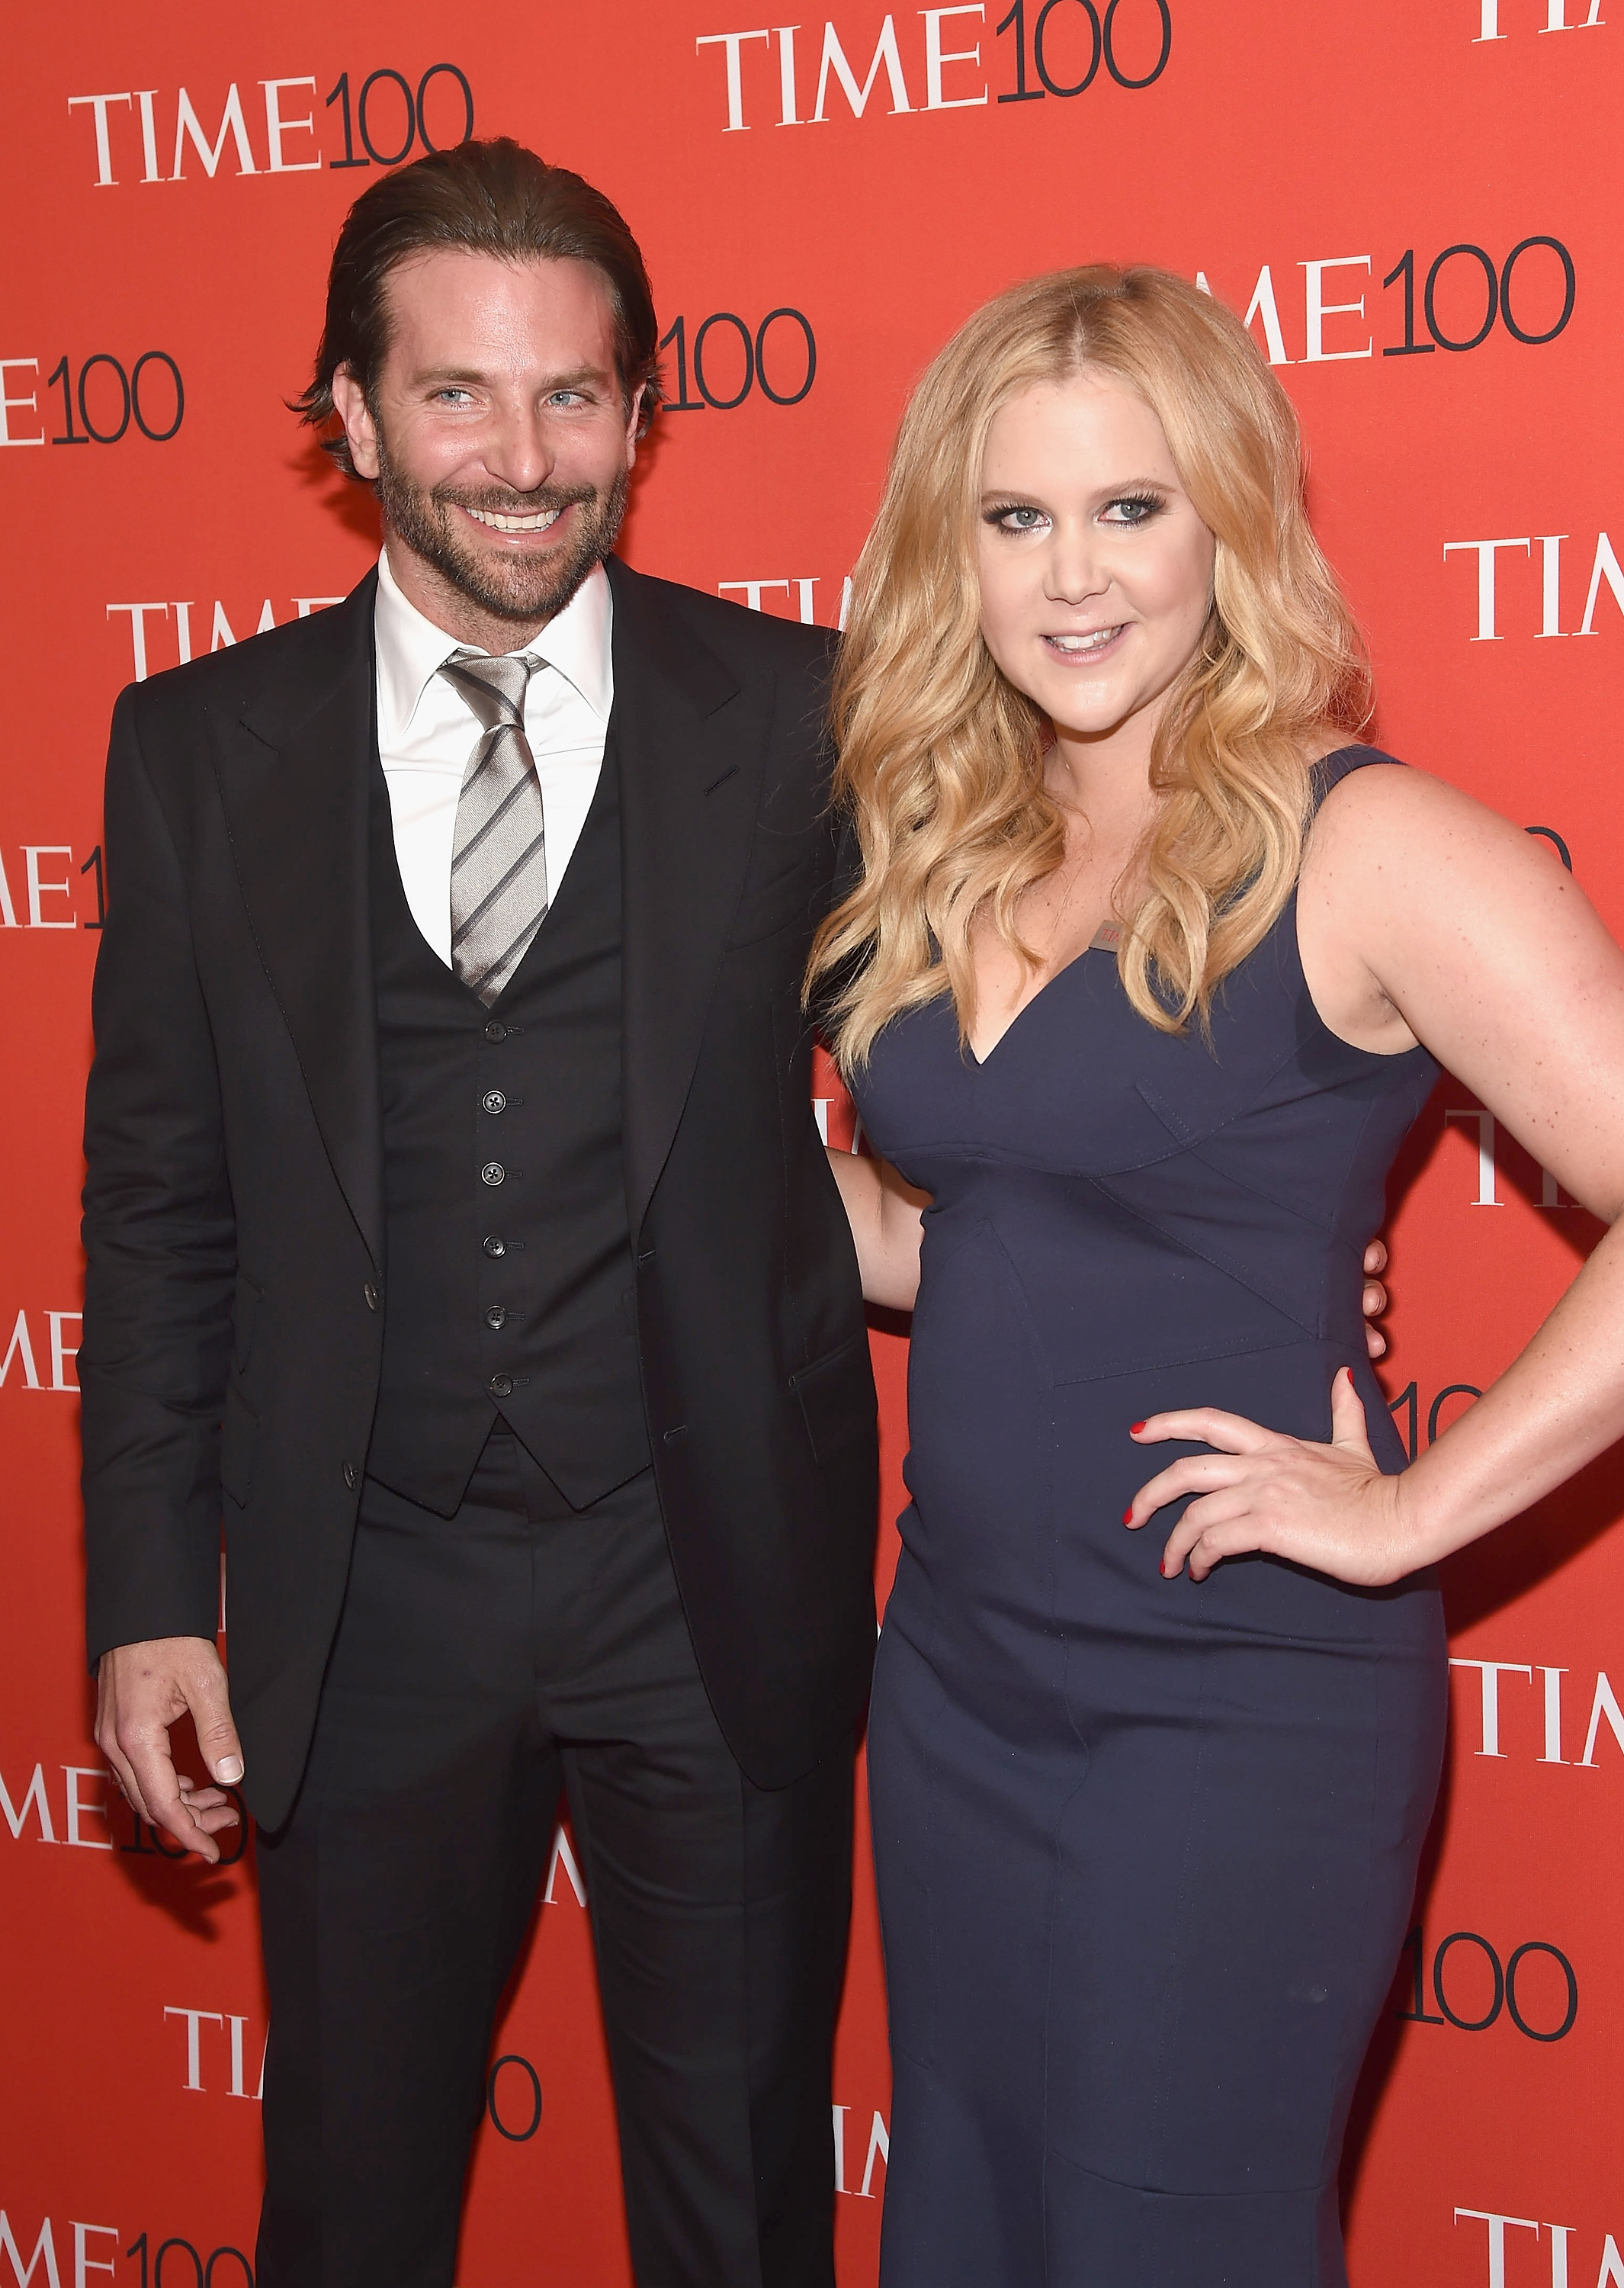 Bradley Cooper and Amy Schumer at TIME 100 Gala in New York City on April 21, 2015.